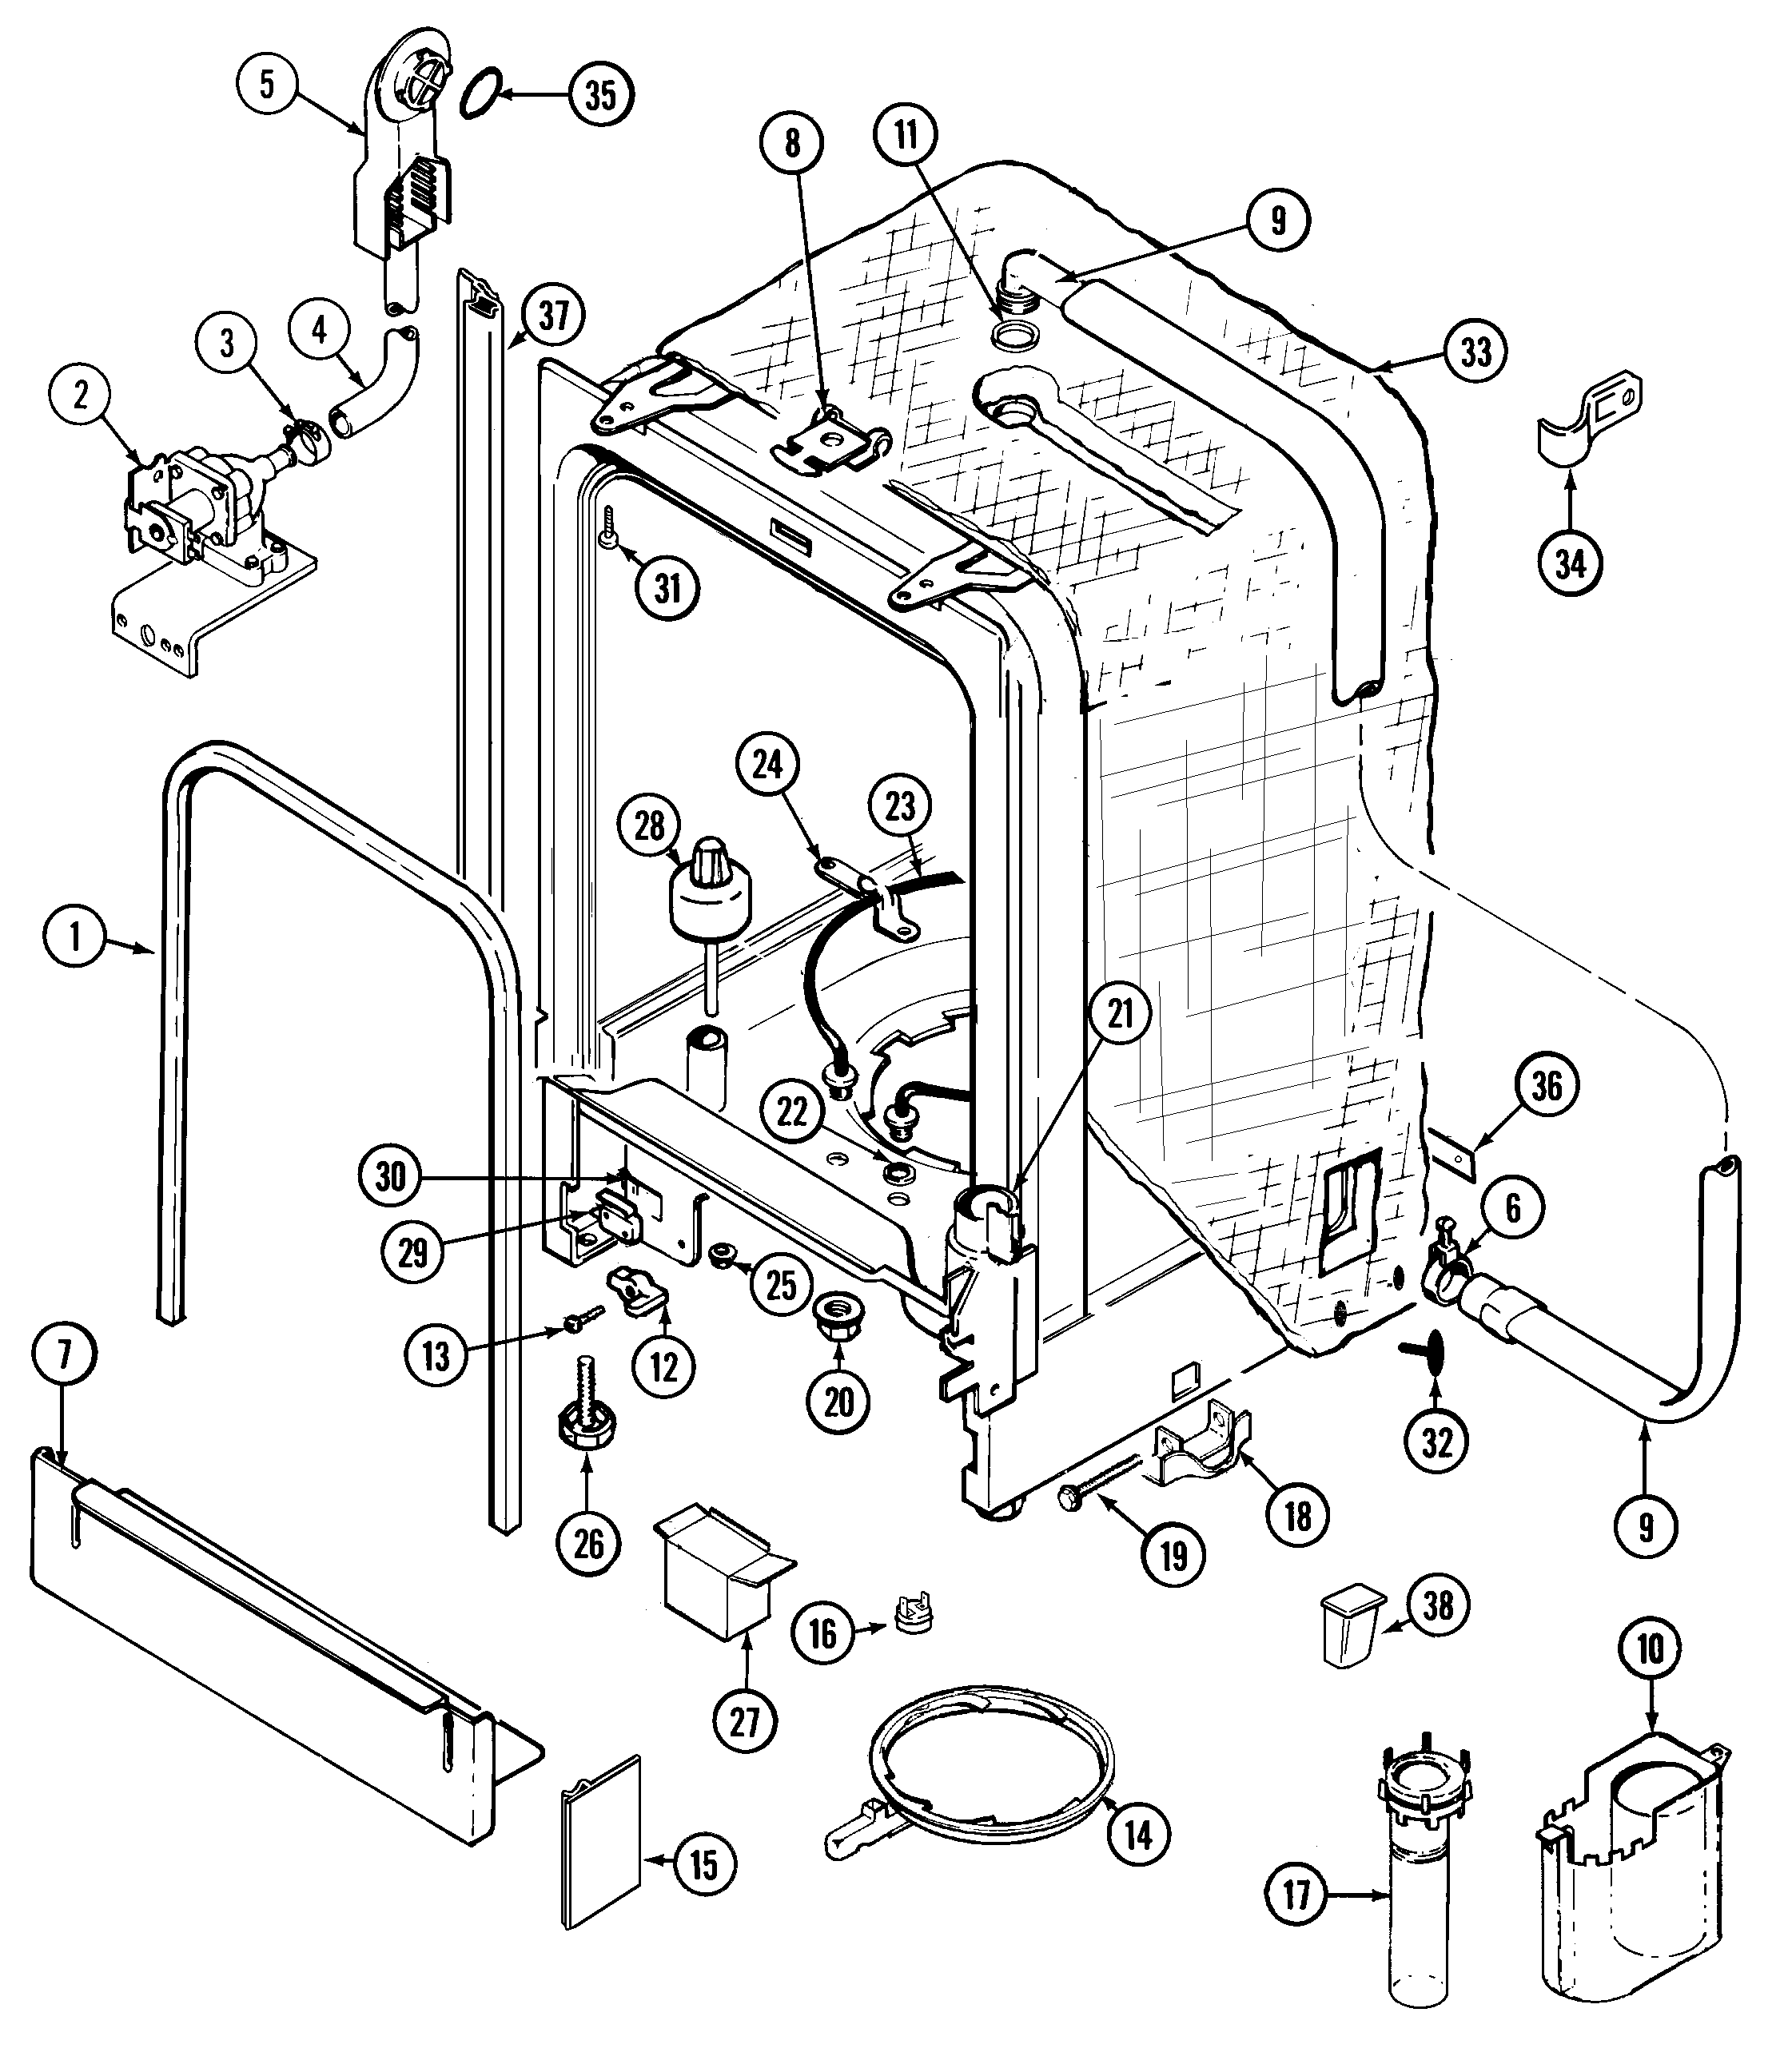 MDB6000AWA Dishwasher Tub Parts diagram